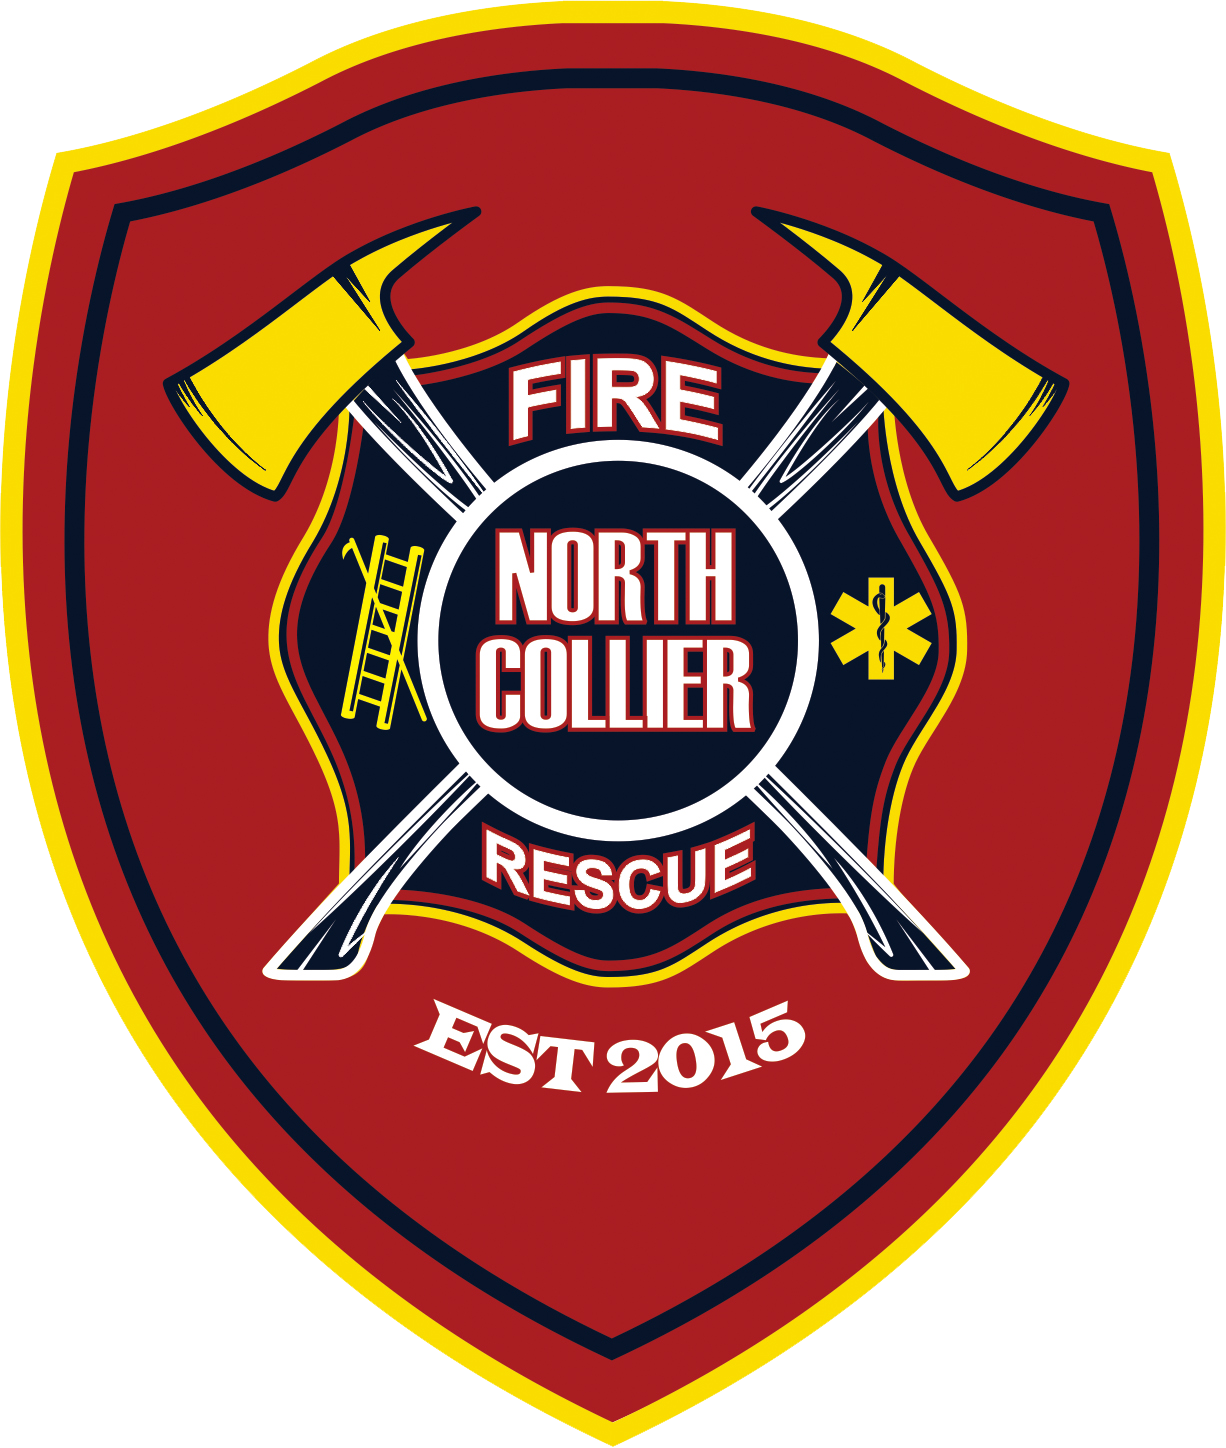 North Collier Fire Rescue